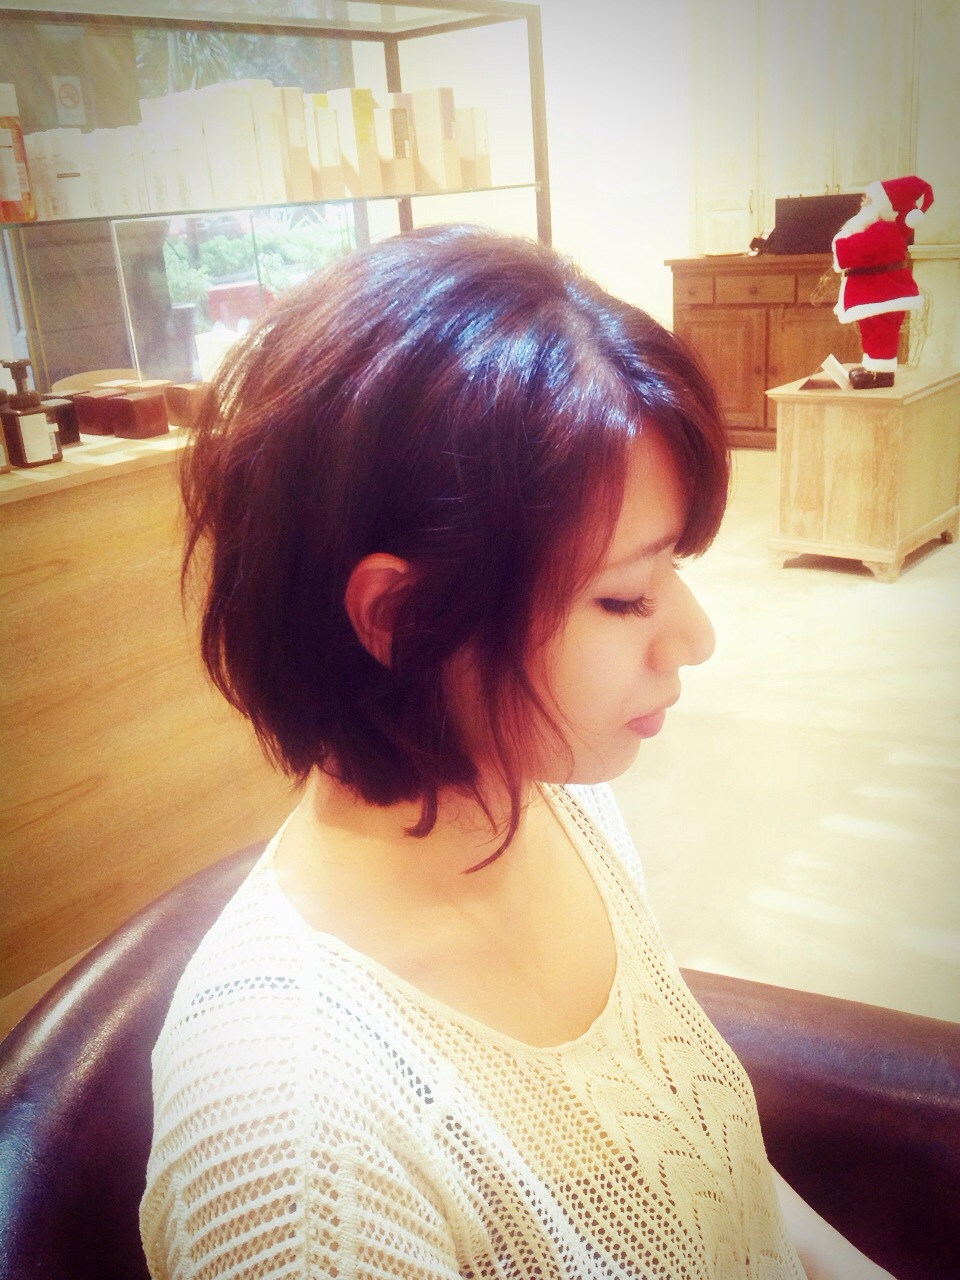 Japanese Style Cut by Chiho from Aventa Hair Salon